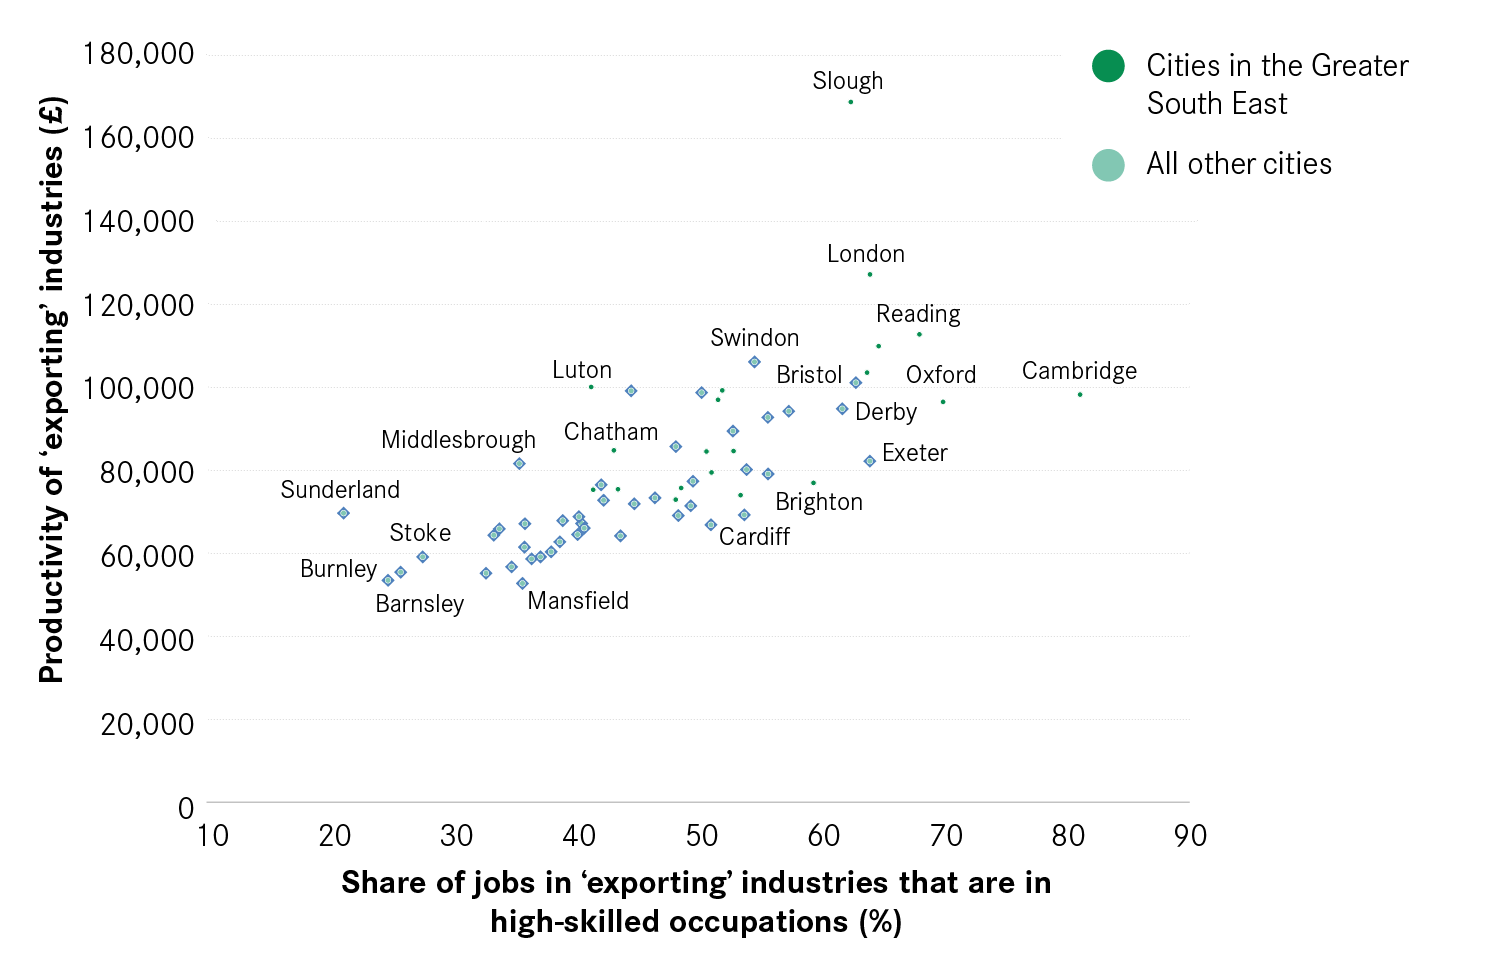 6: Productivity and high-skilled occupations in the exporting industries of cities, 2015